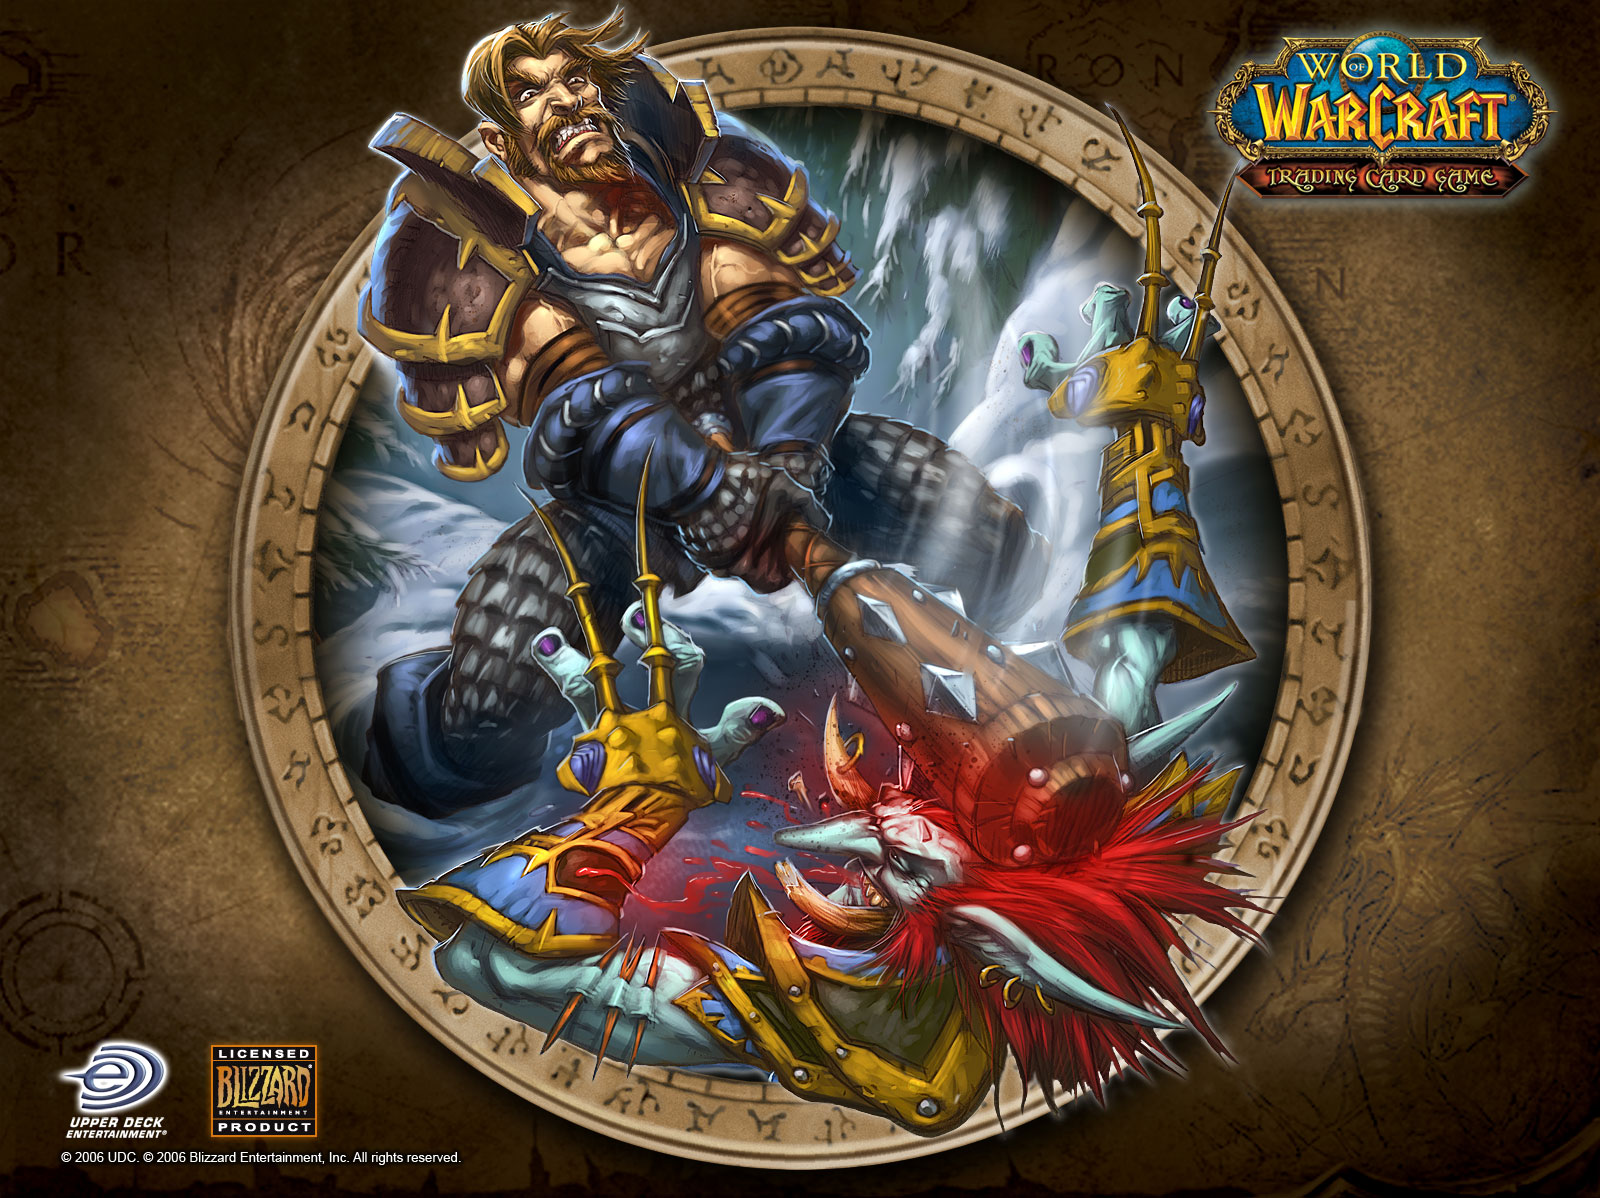 World Of Warcraft Wallpapers   Download World of Warcraft 1 1600x1198